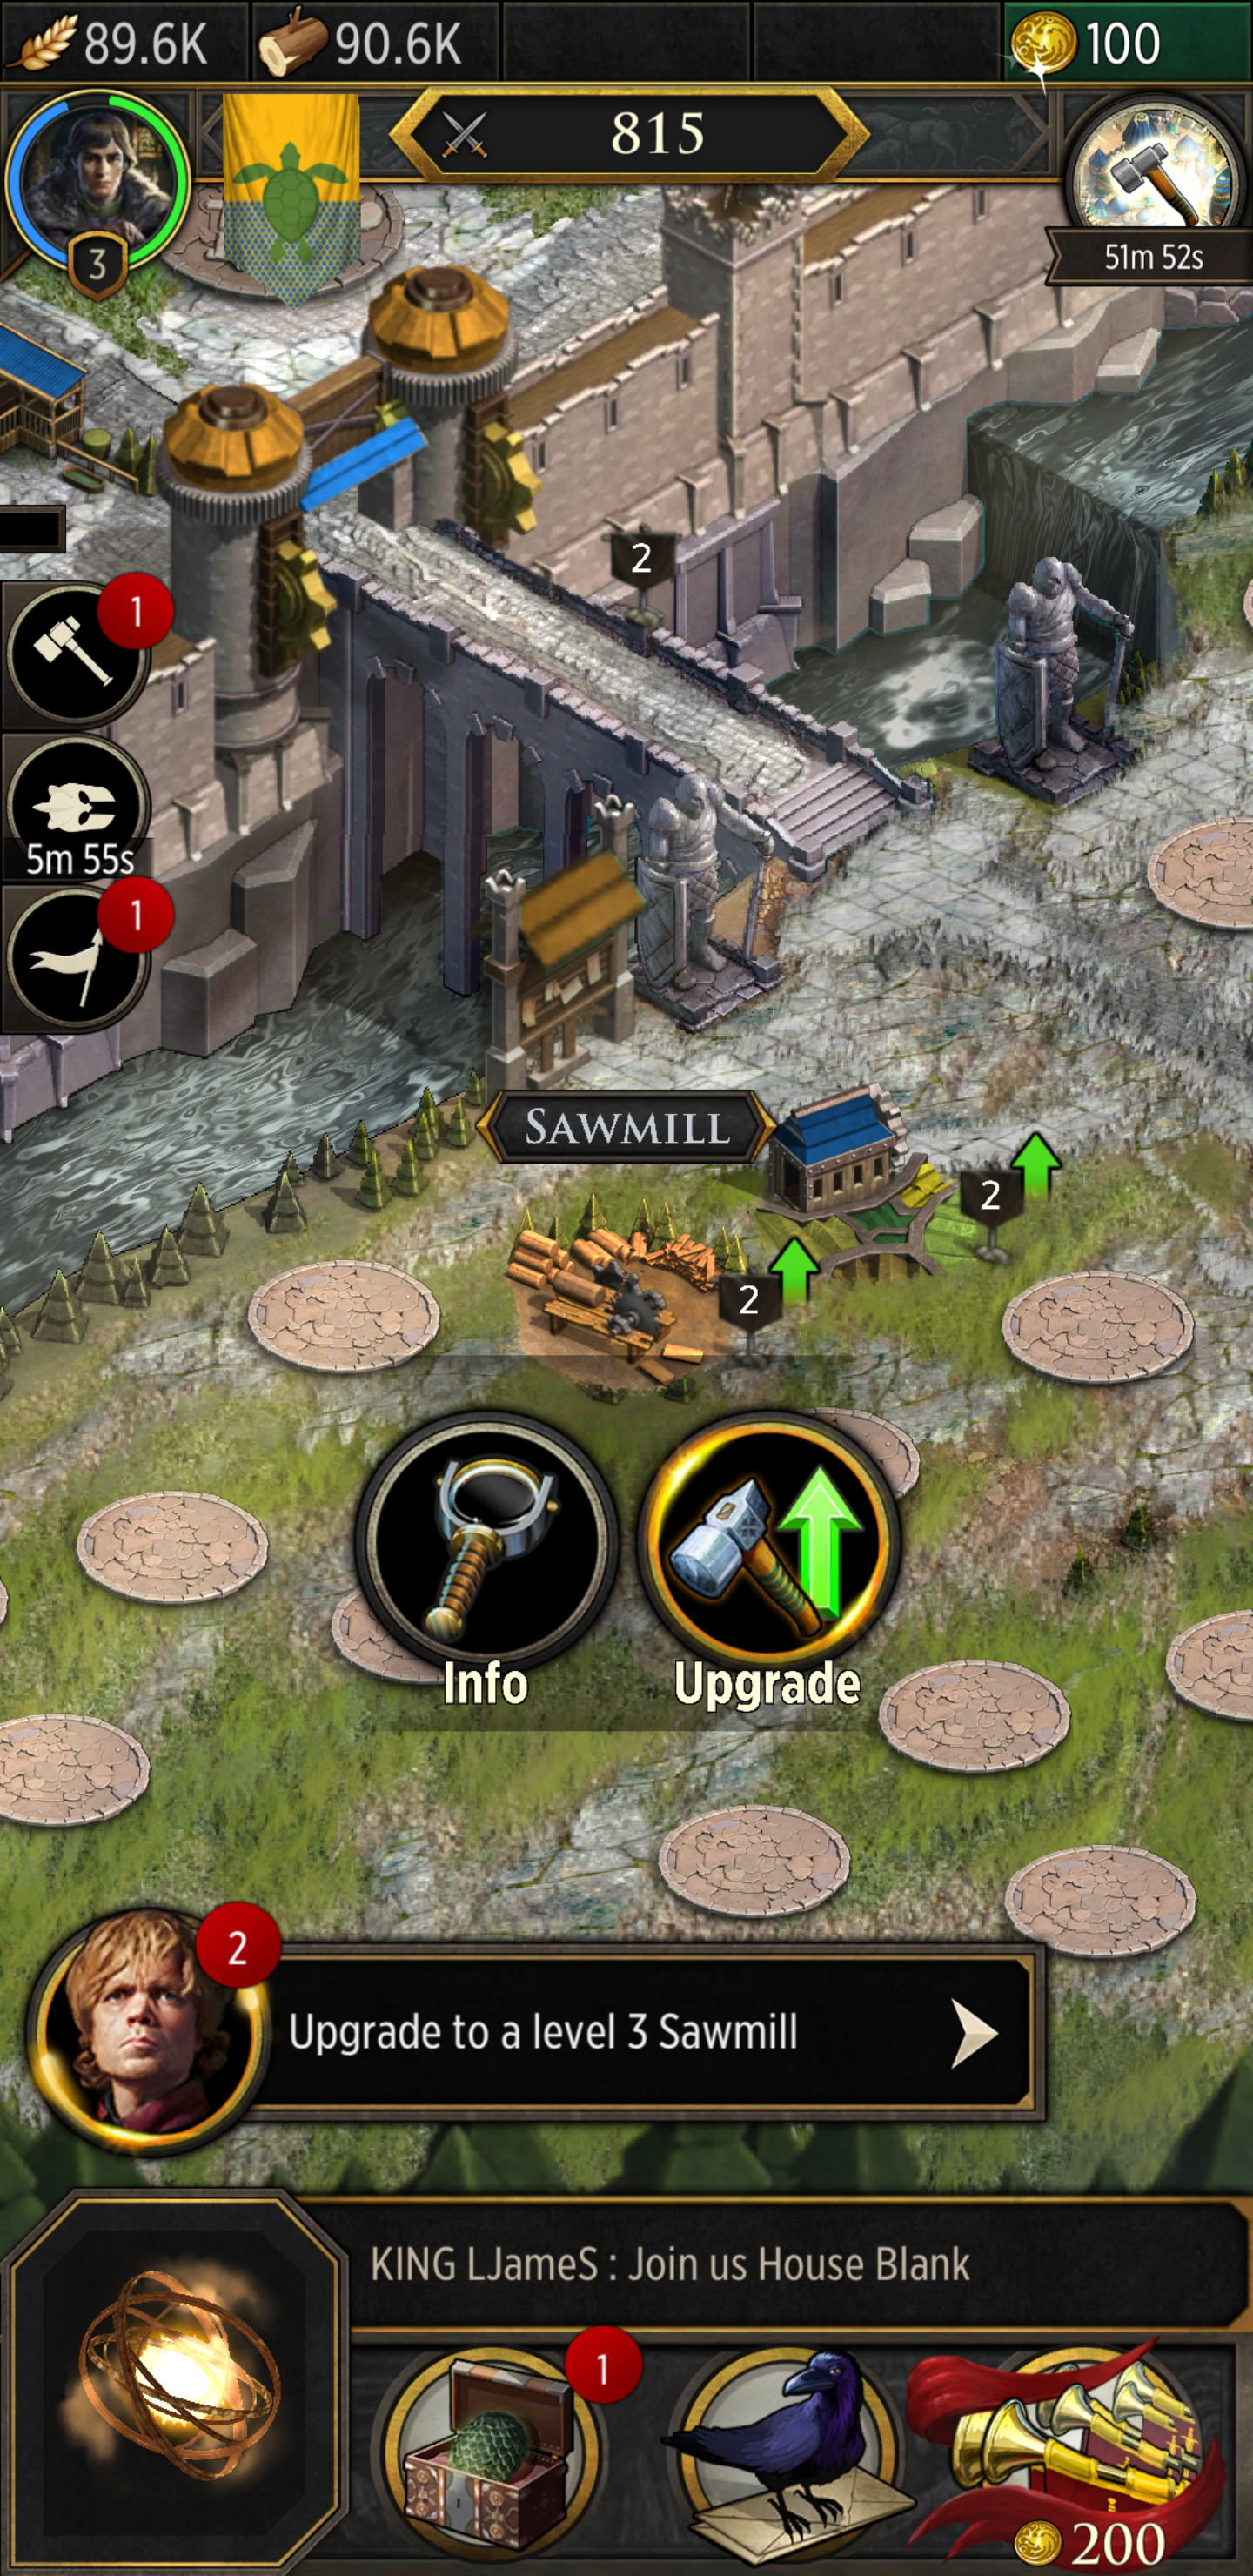 Hands-on] Game of Thrones: Conquest, probably the most